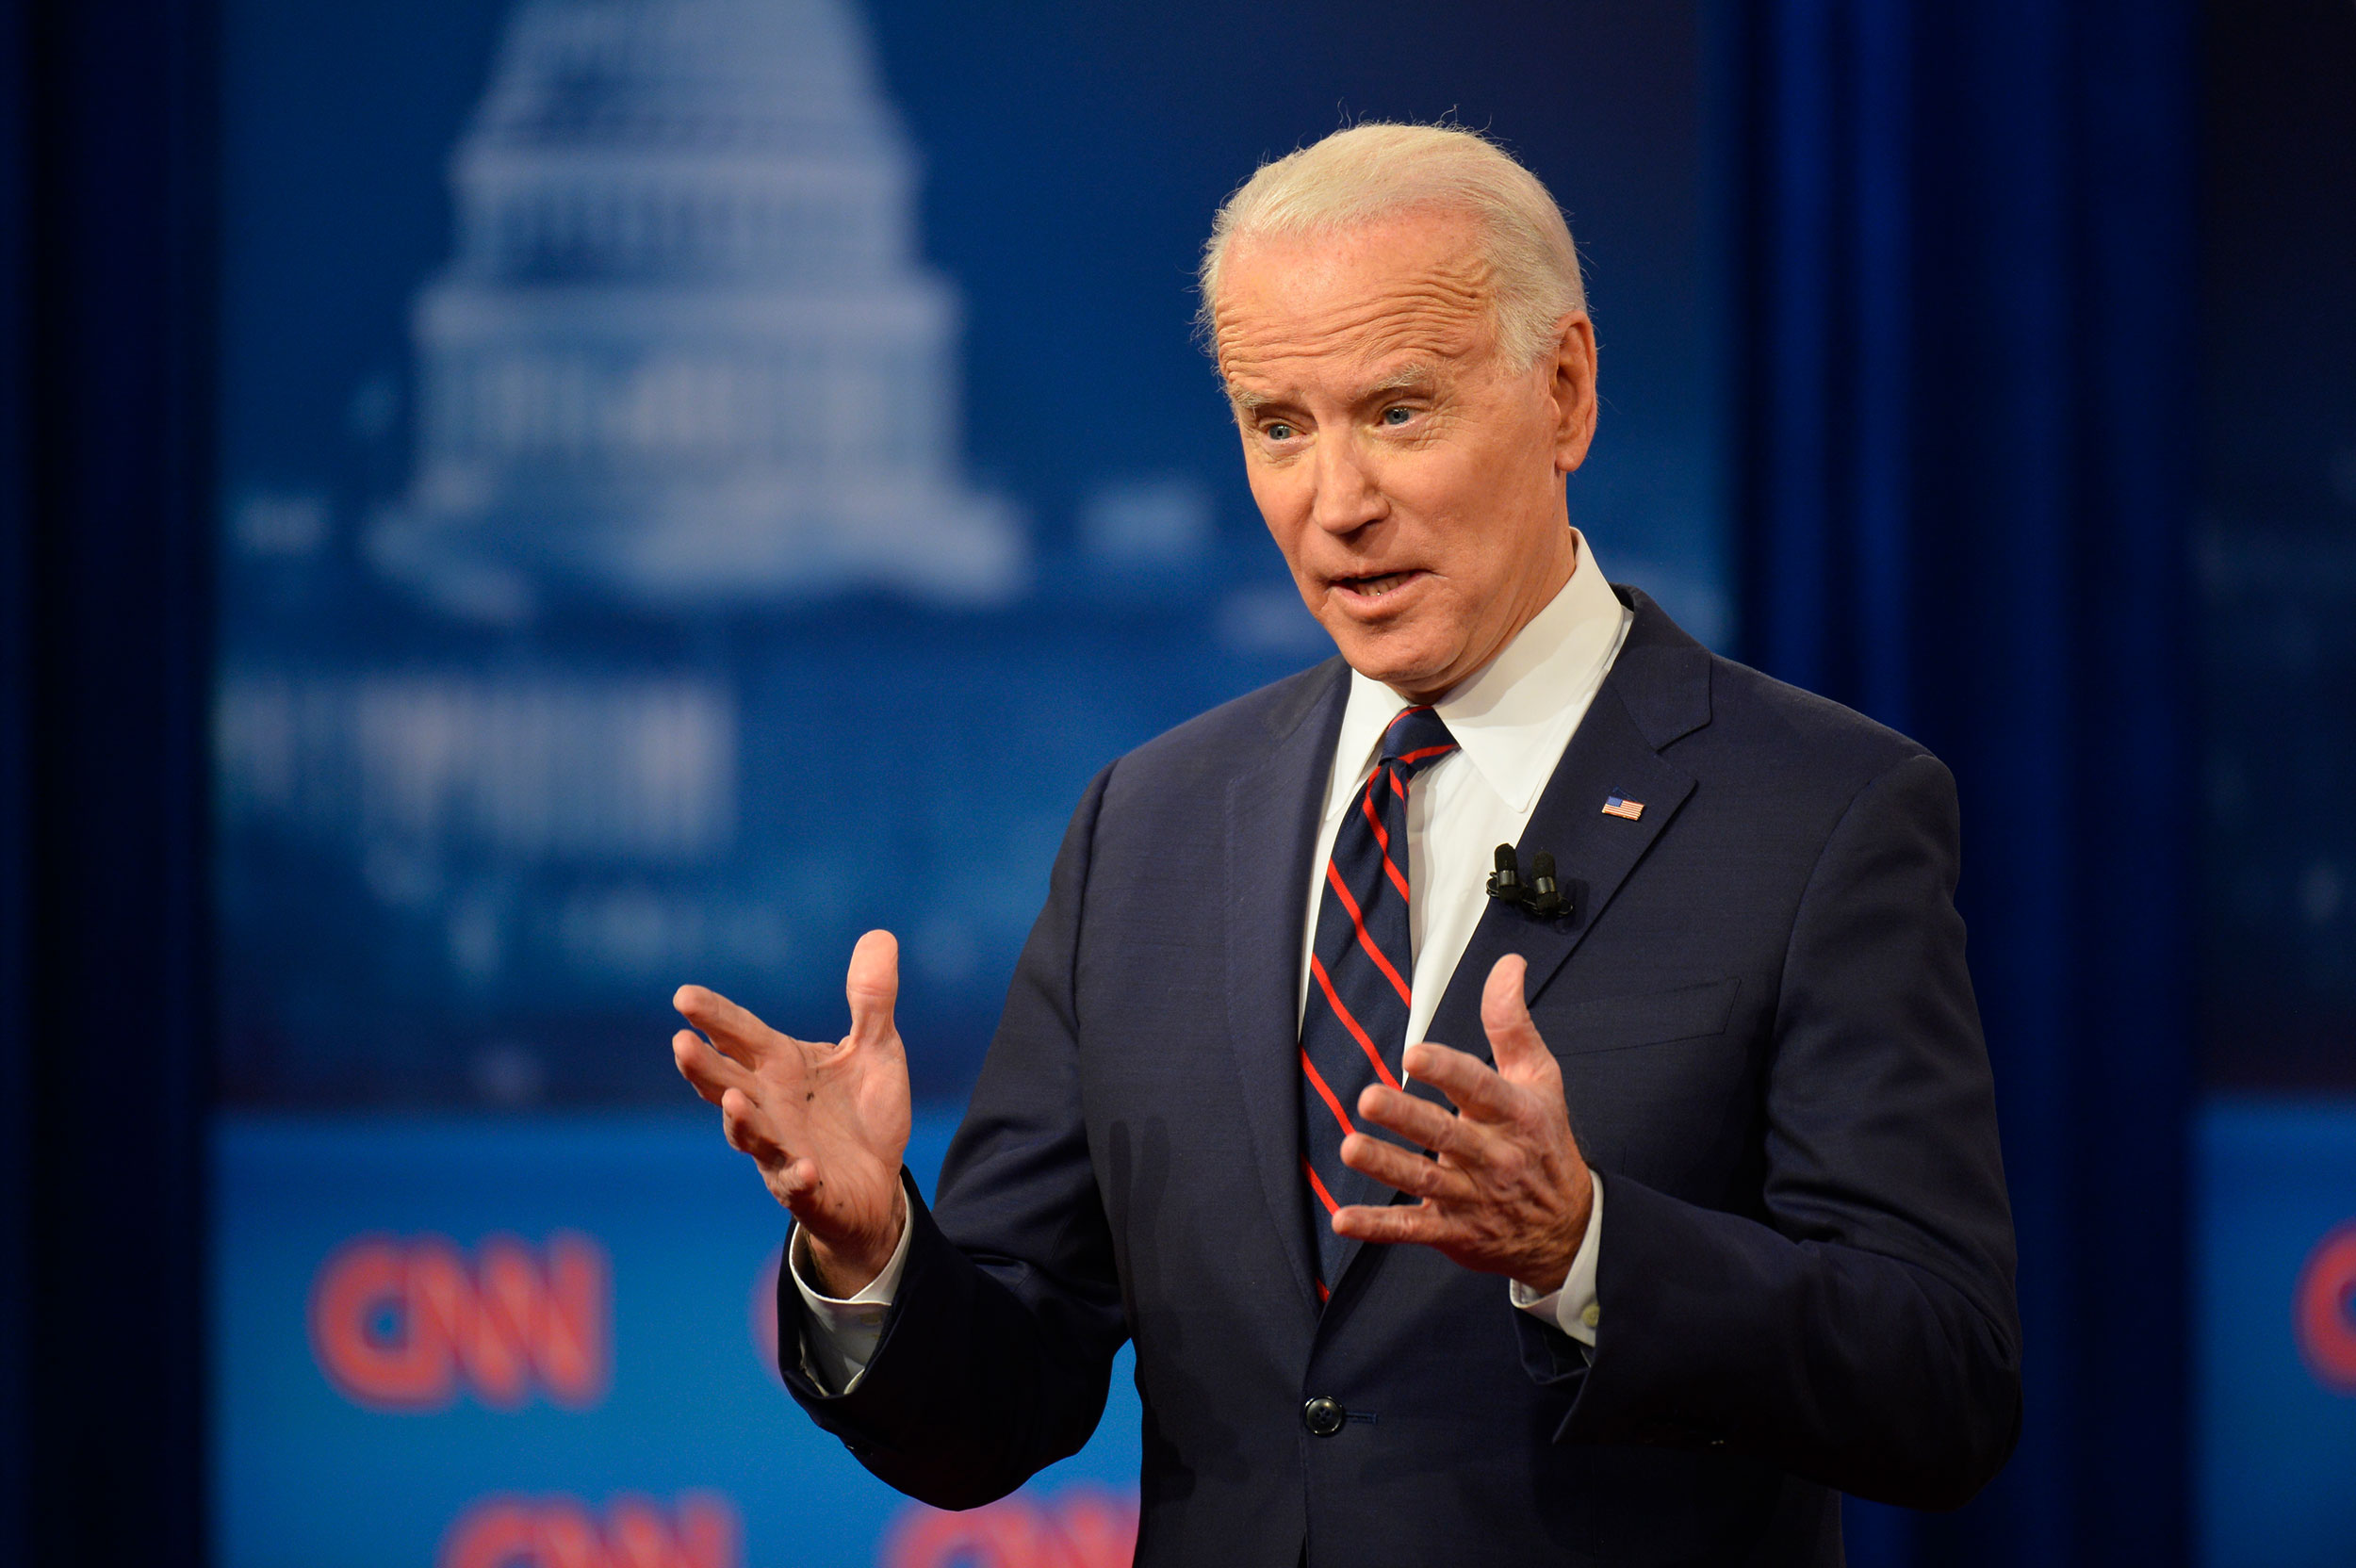 5 takeaways from Joe Biden's CNN town hall on the coronavirus response